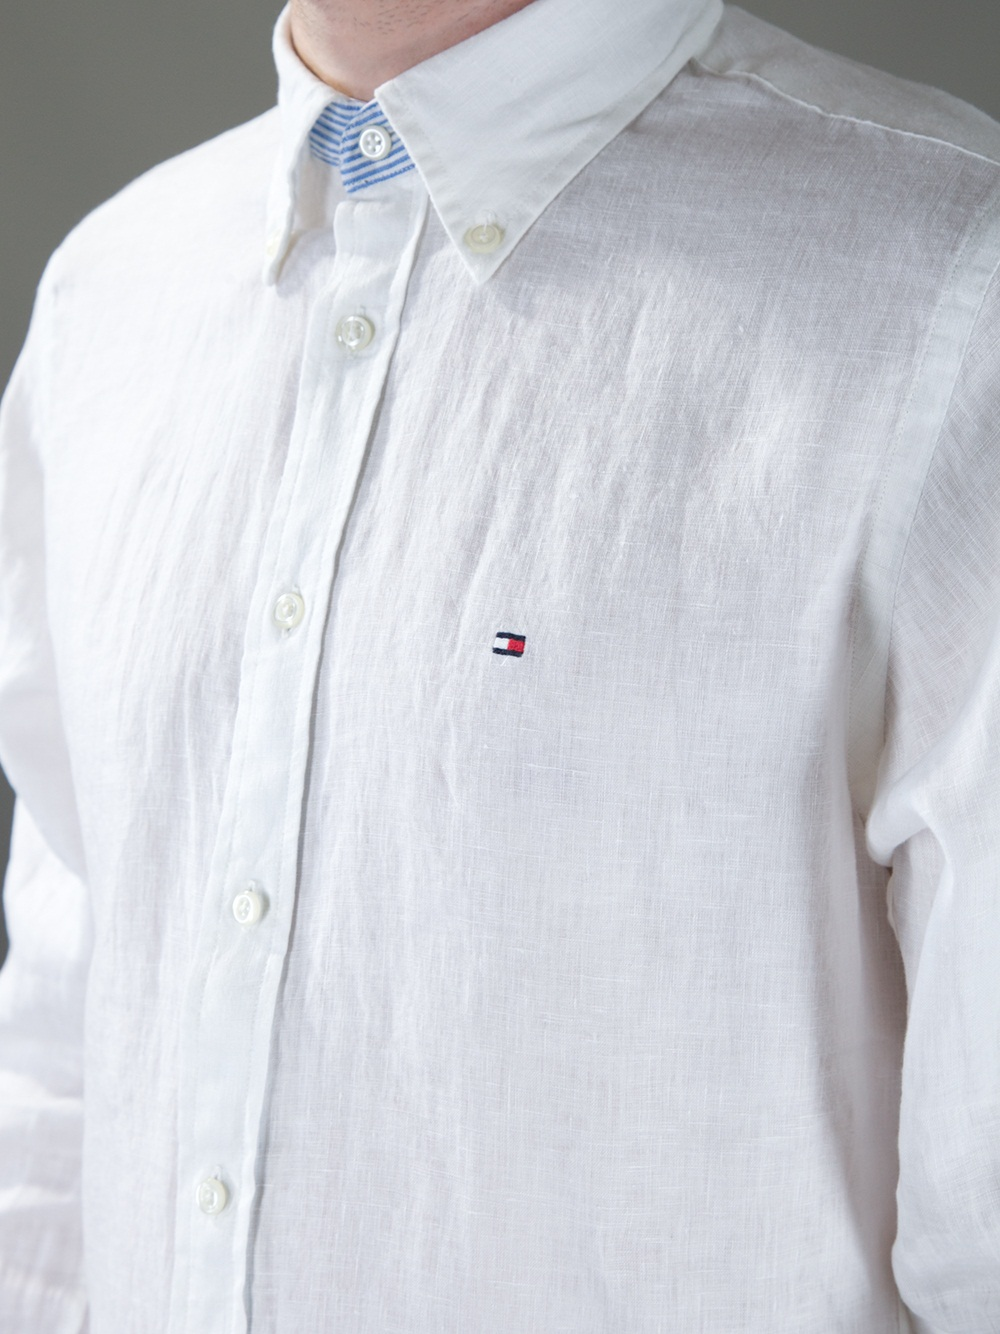 tommy hilfiger classic linen shirt in white for men lyst. Black Bedroom Furniture Sets. Home Design Ideas